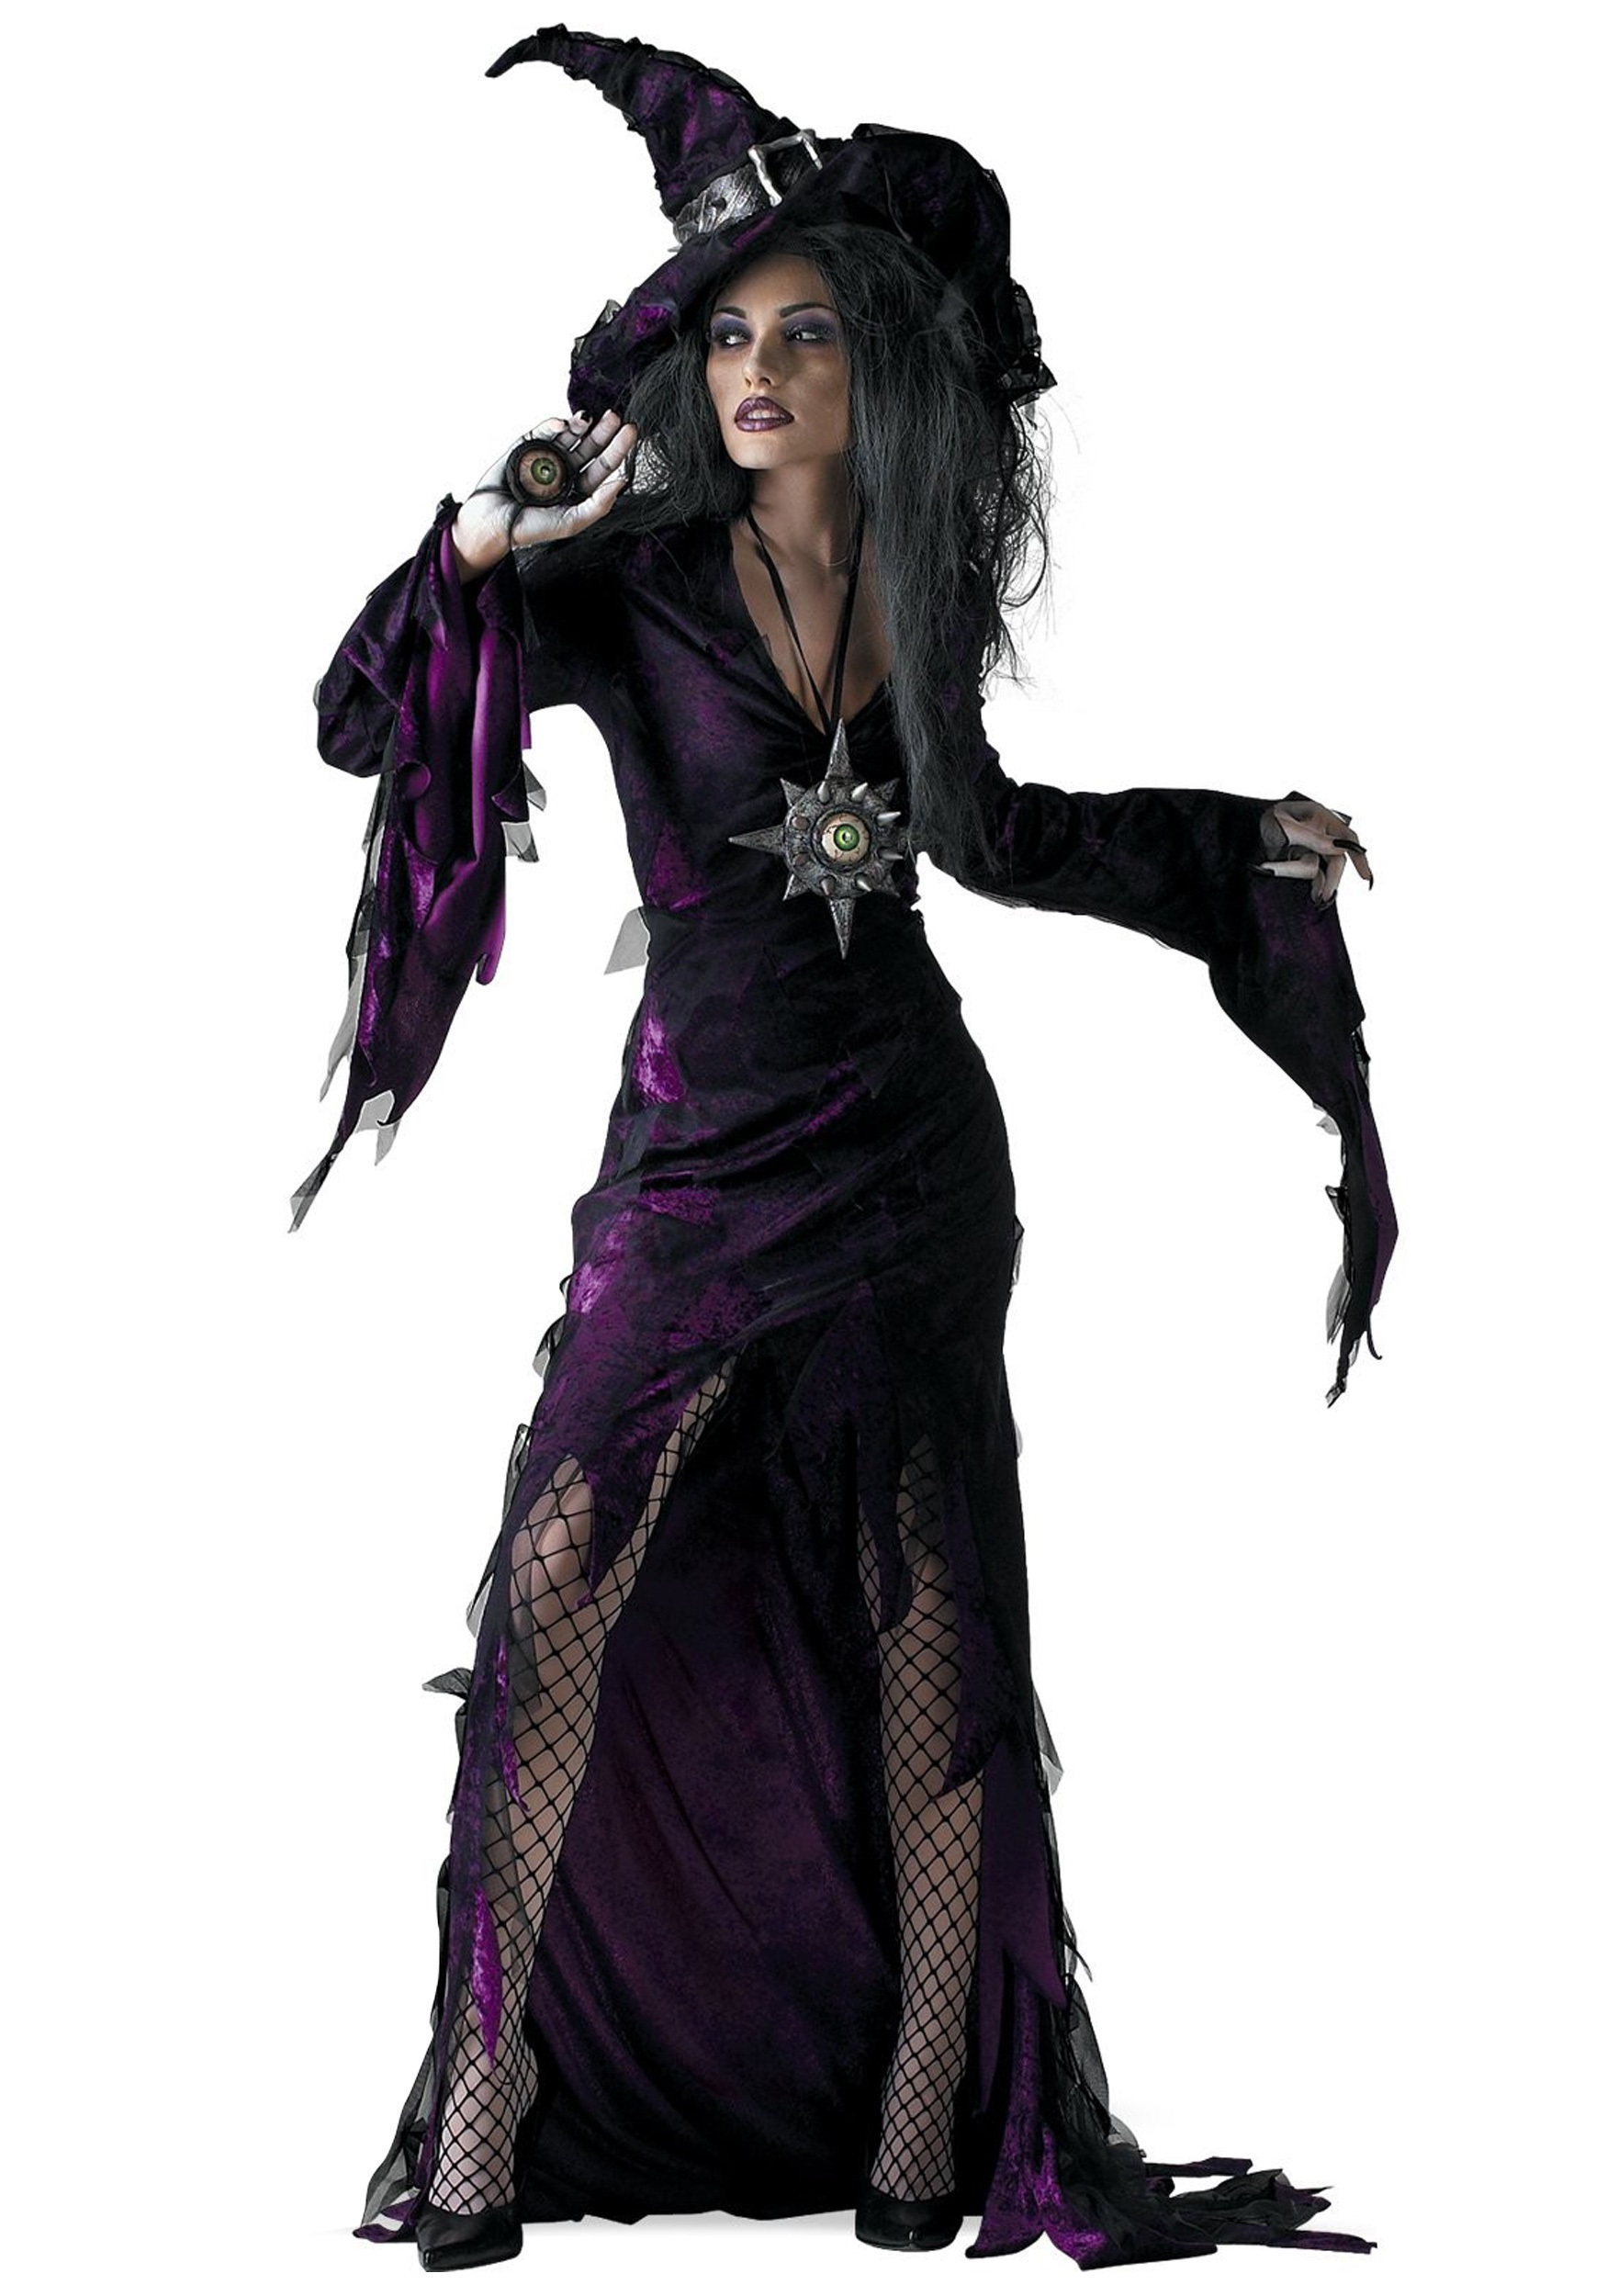 sc 1 st  Halloween Costumes : dark wizard costume  - Germanpascual.Com